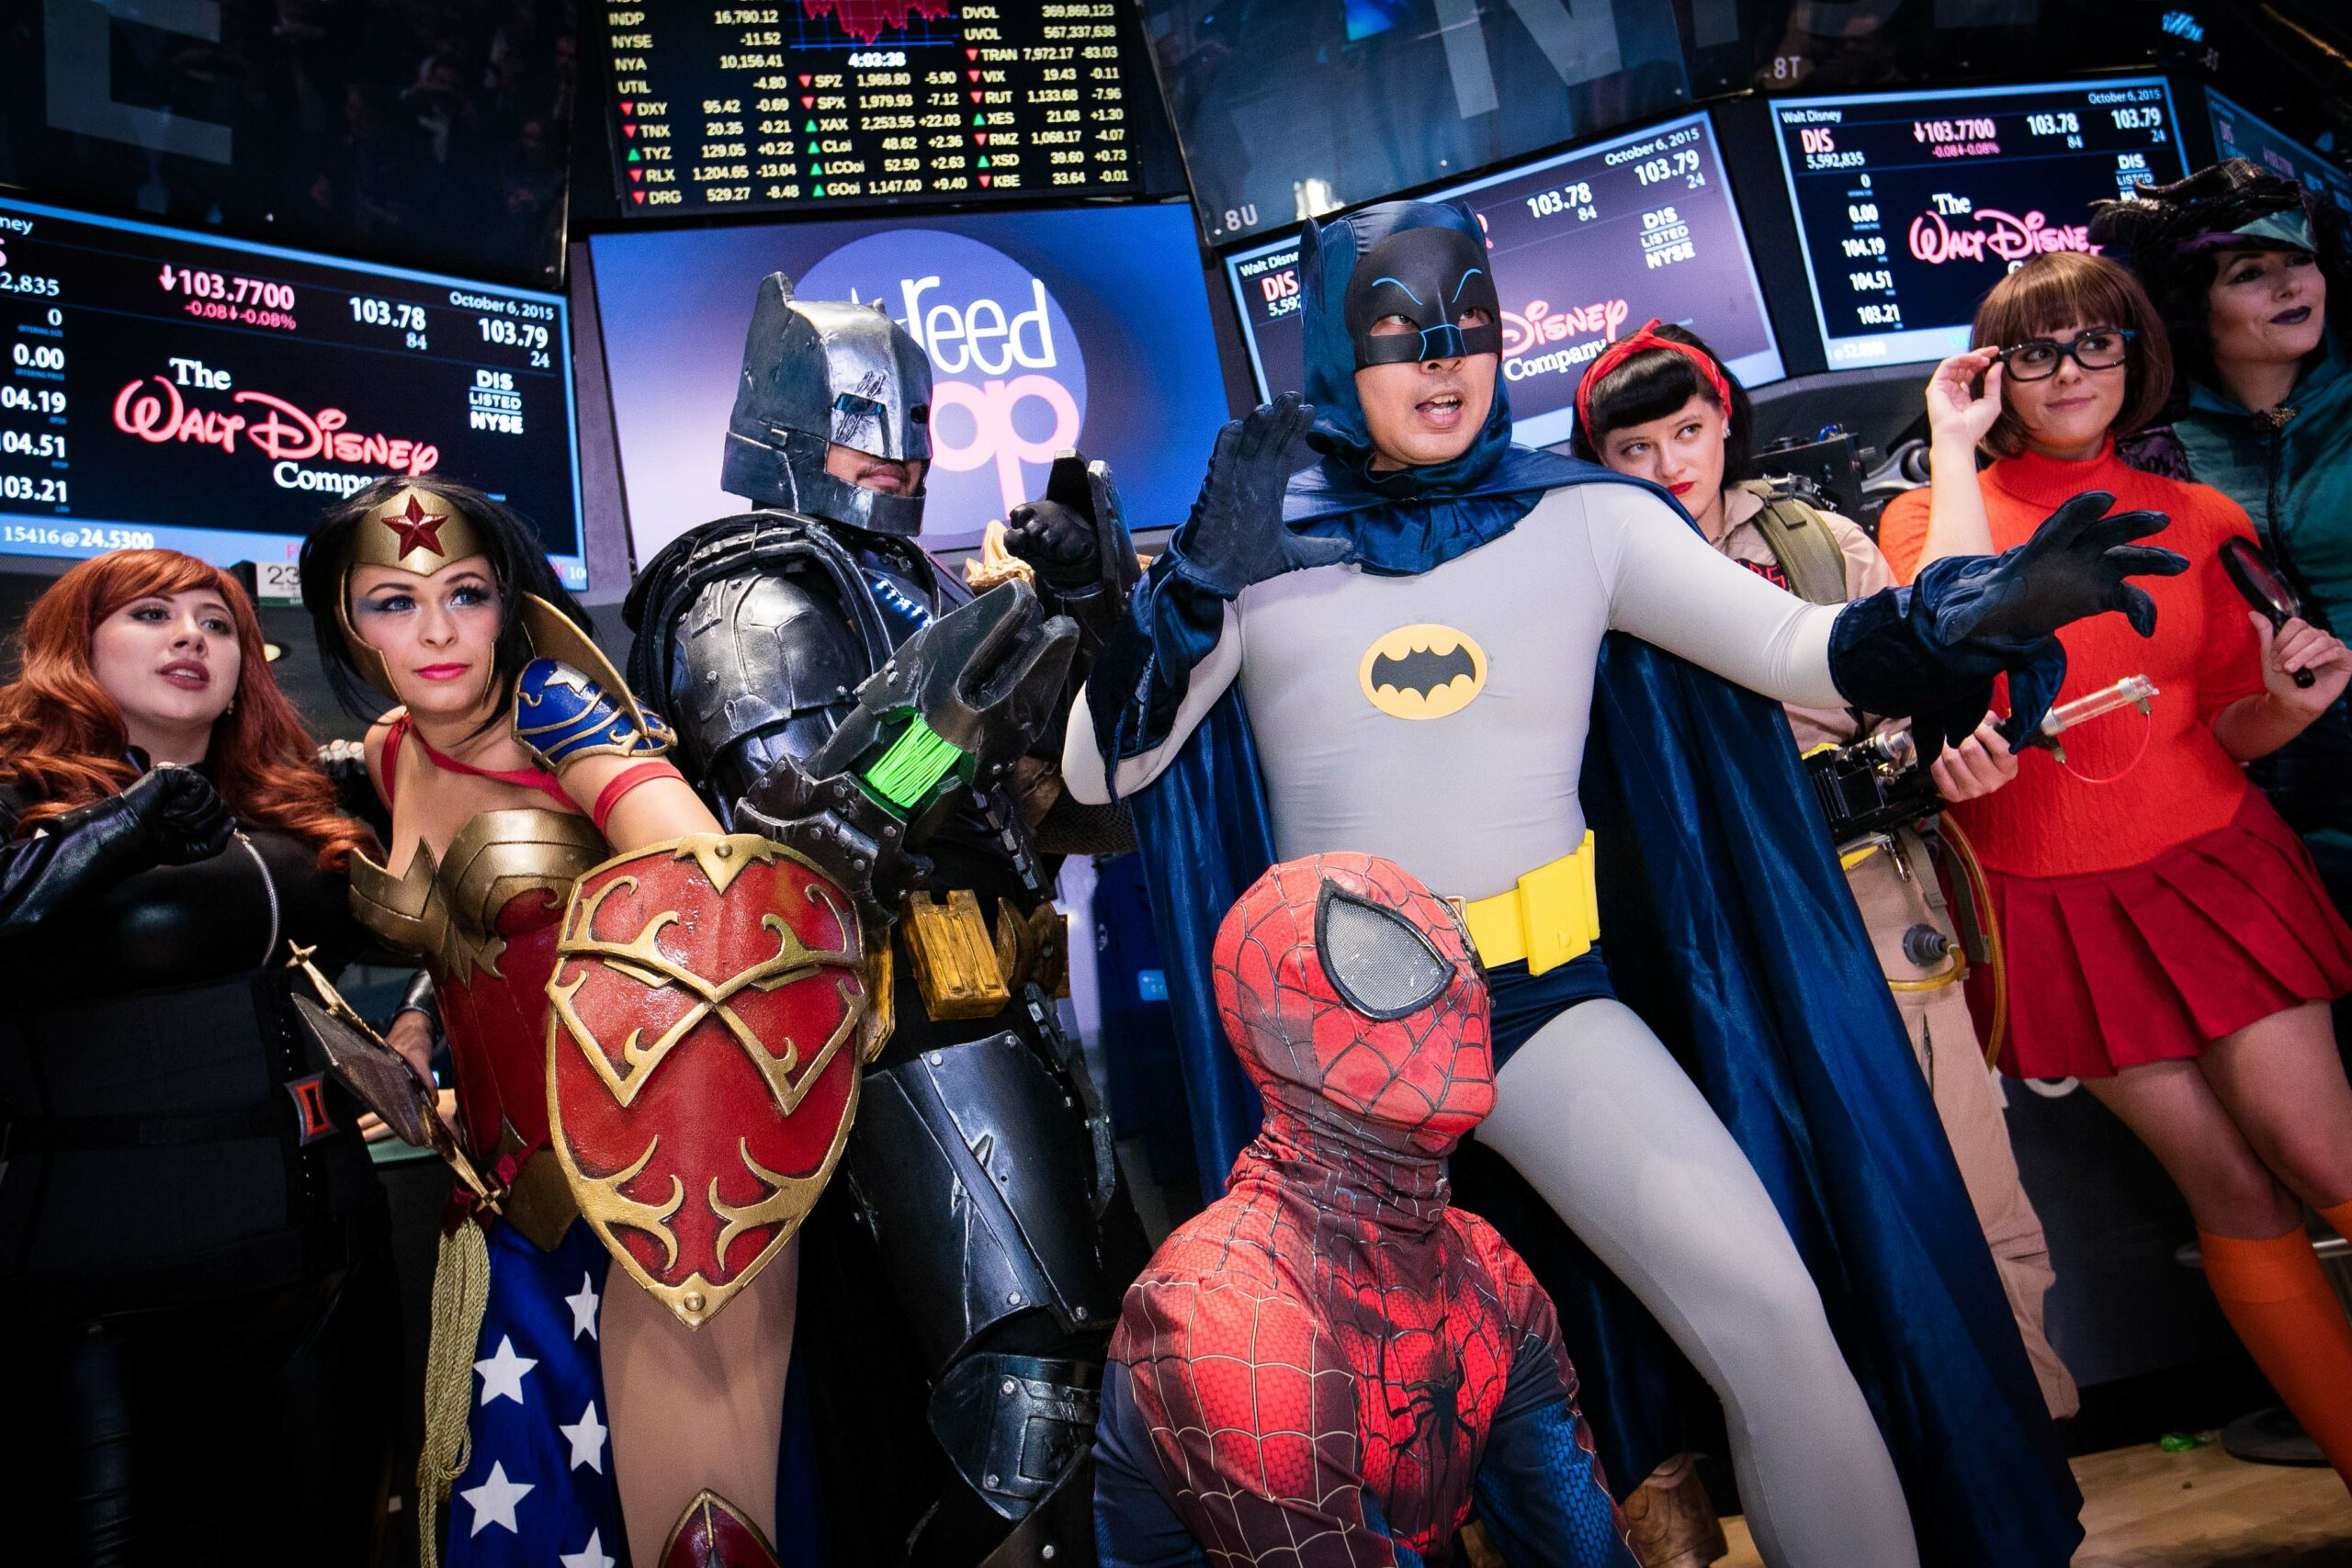 NYCC NYSE: Photo Credit: NYSE/Valerie Caviness